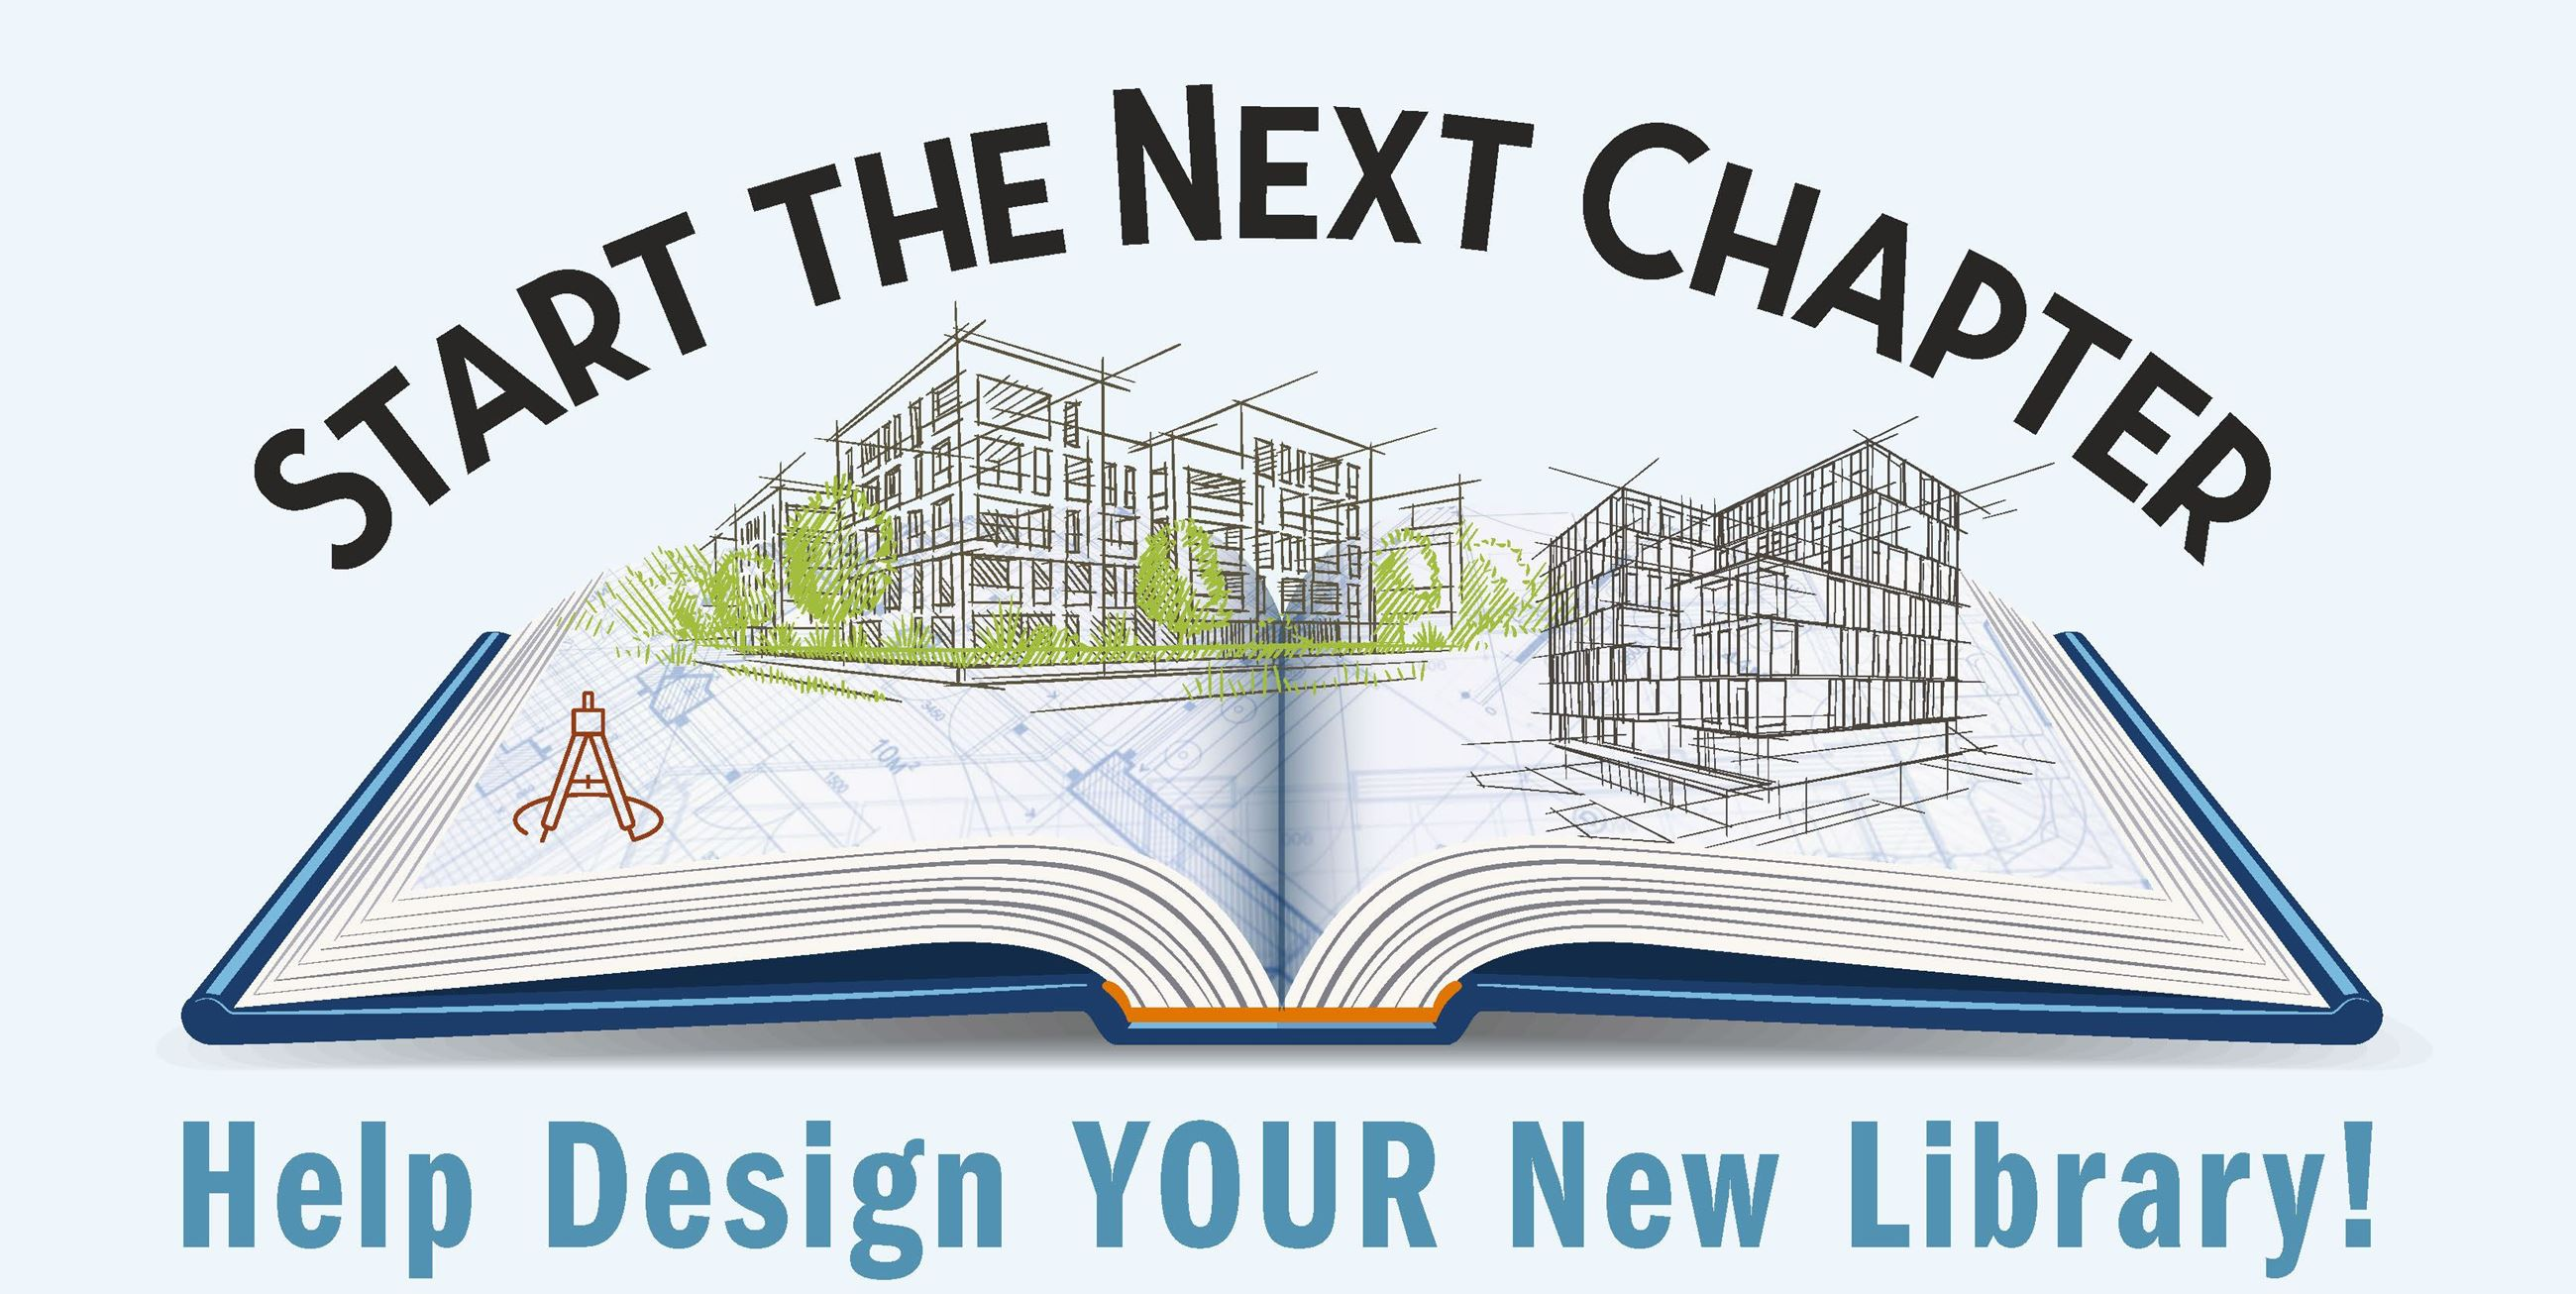 New City Library - Start The Next Chapter